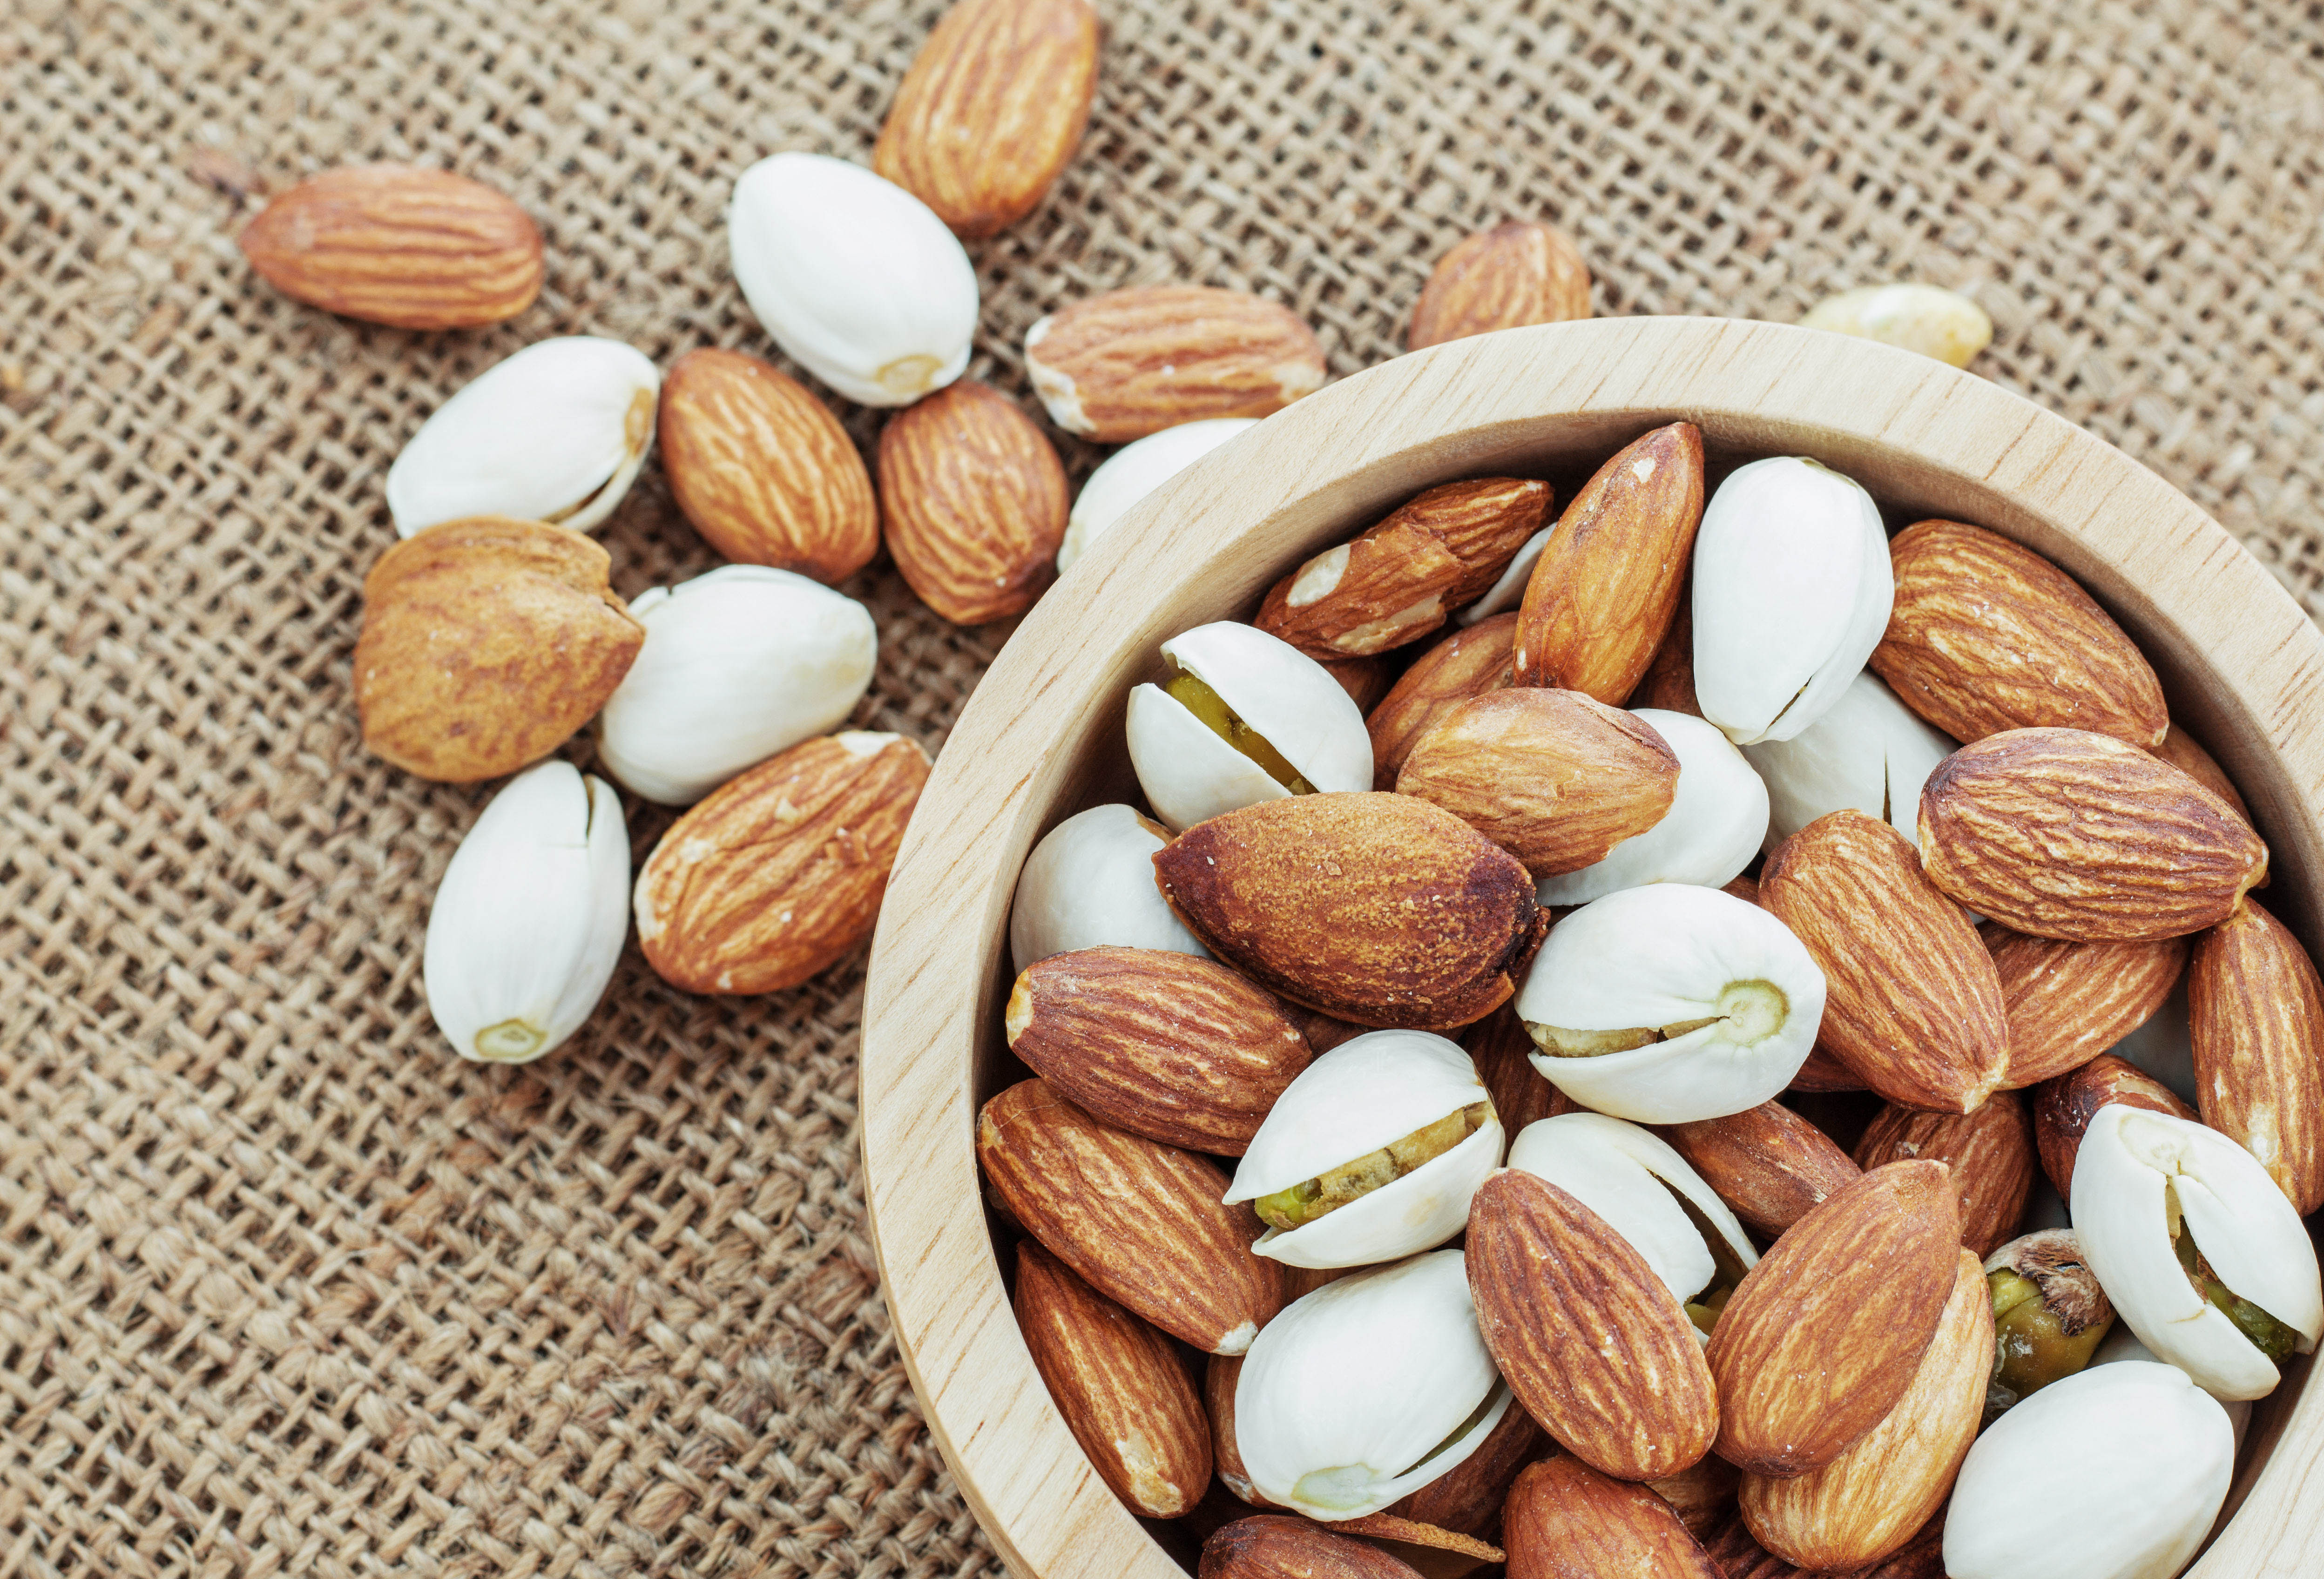 What Are the Benefits of Roasted Salted Almonds? | Healthy Eating | SF Gate